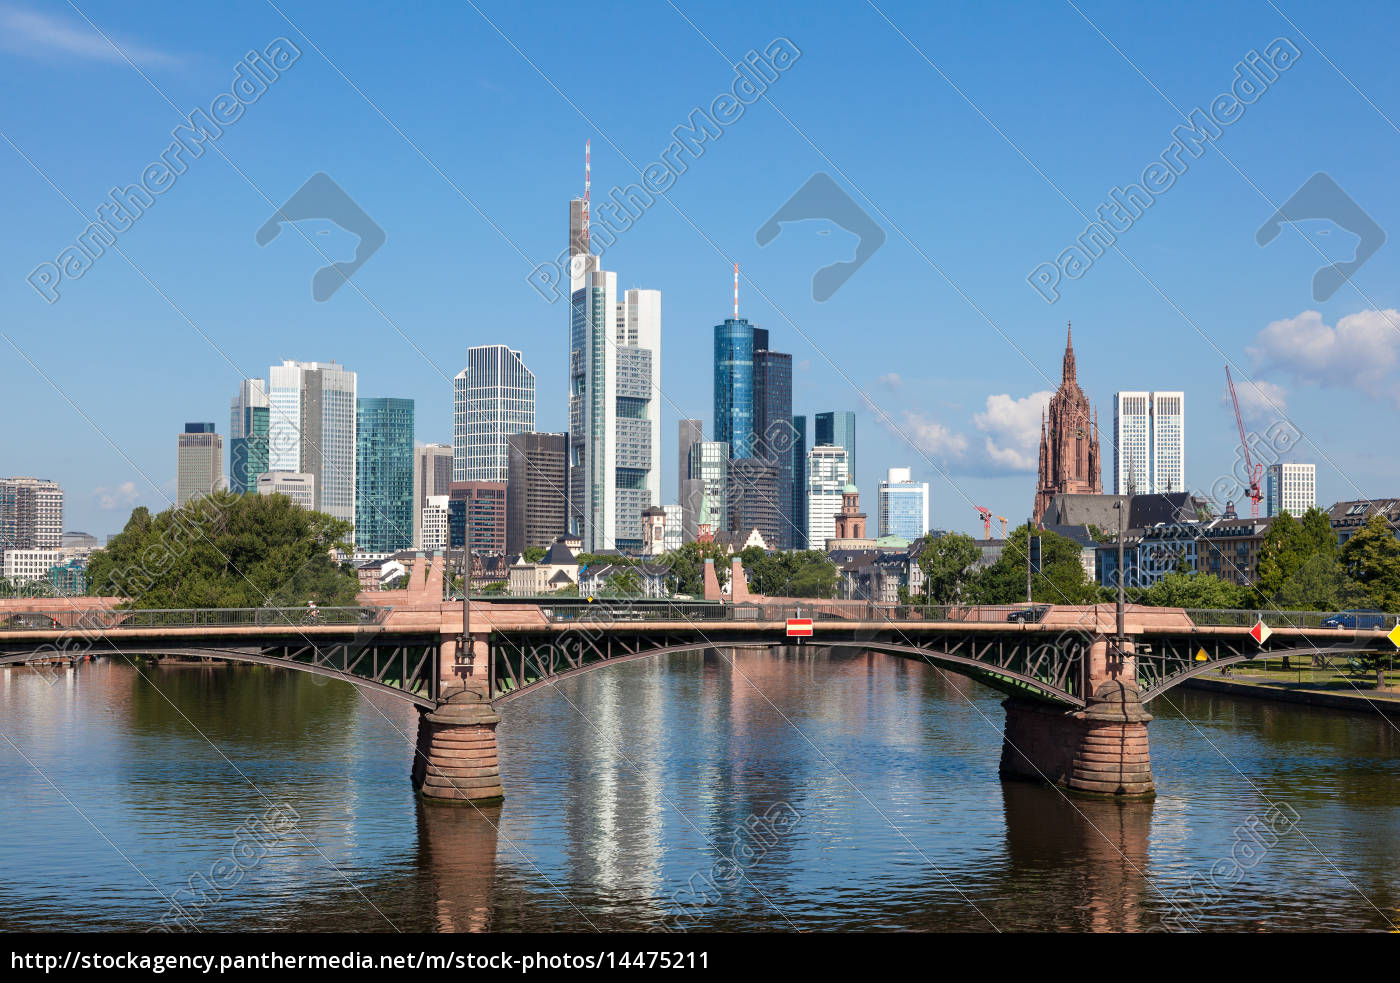 skyline, di, frankfurt, main, assia, germania - 14475211